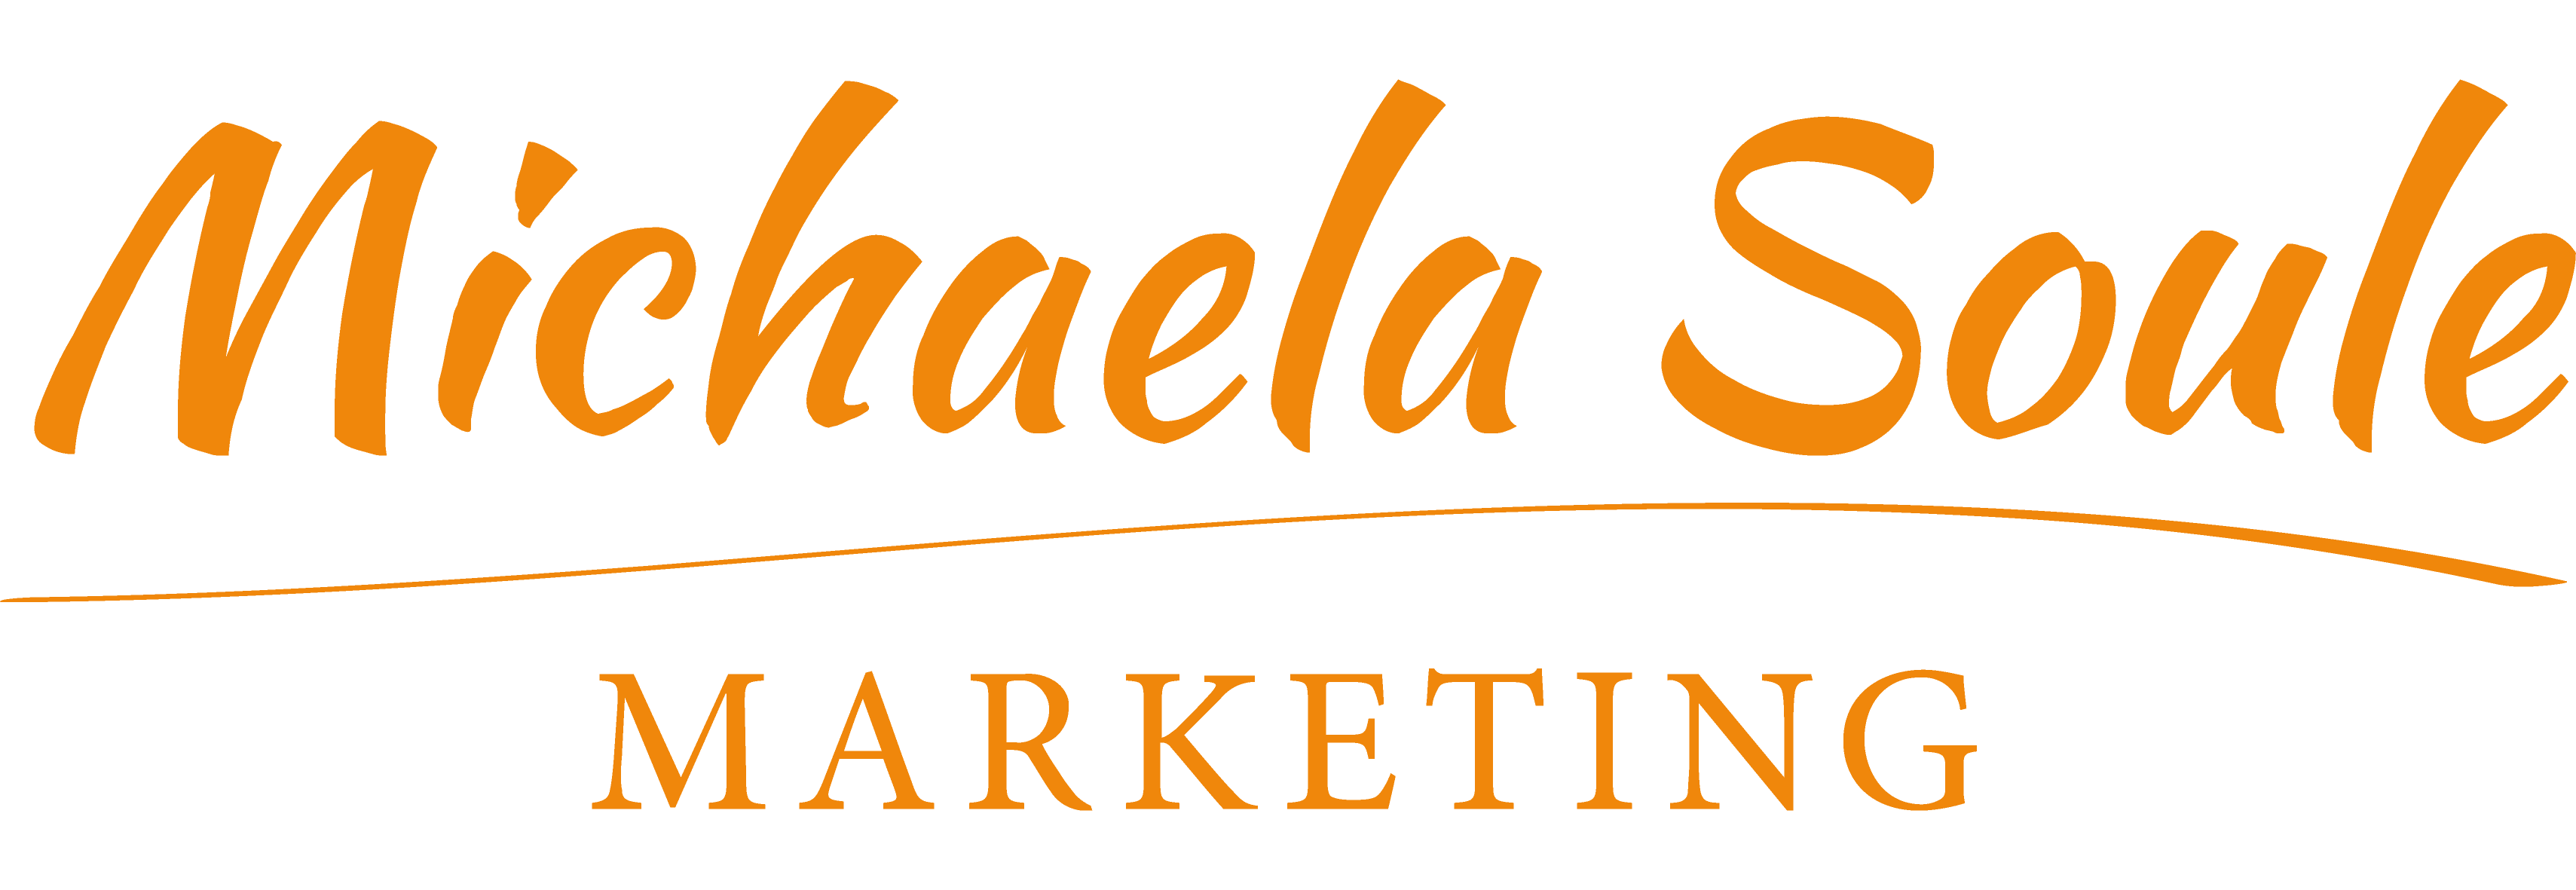 Michaela Soule Marketing